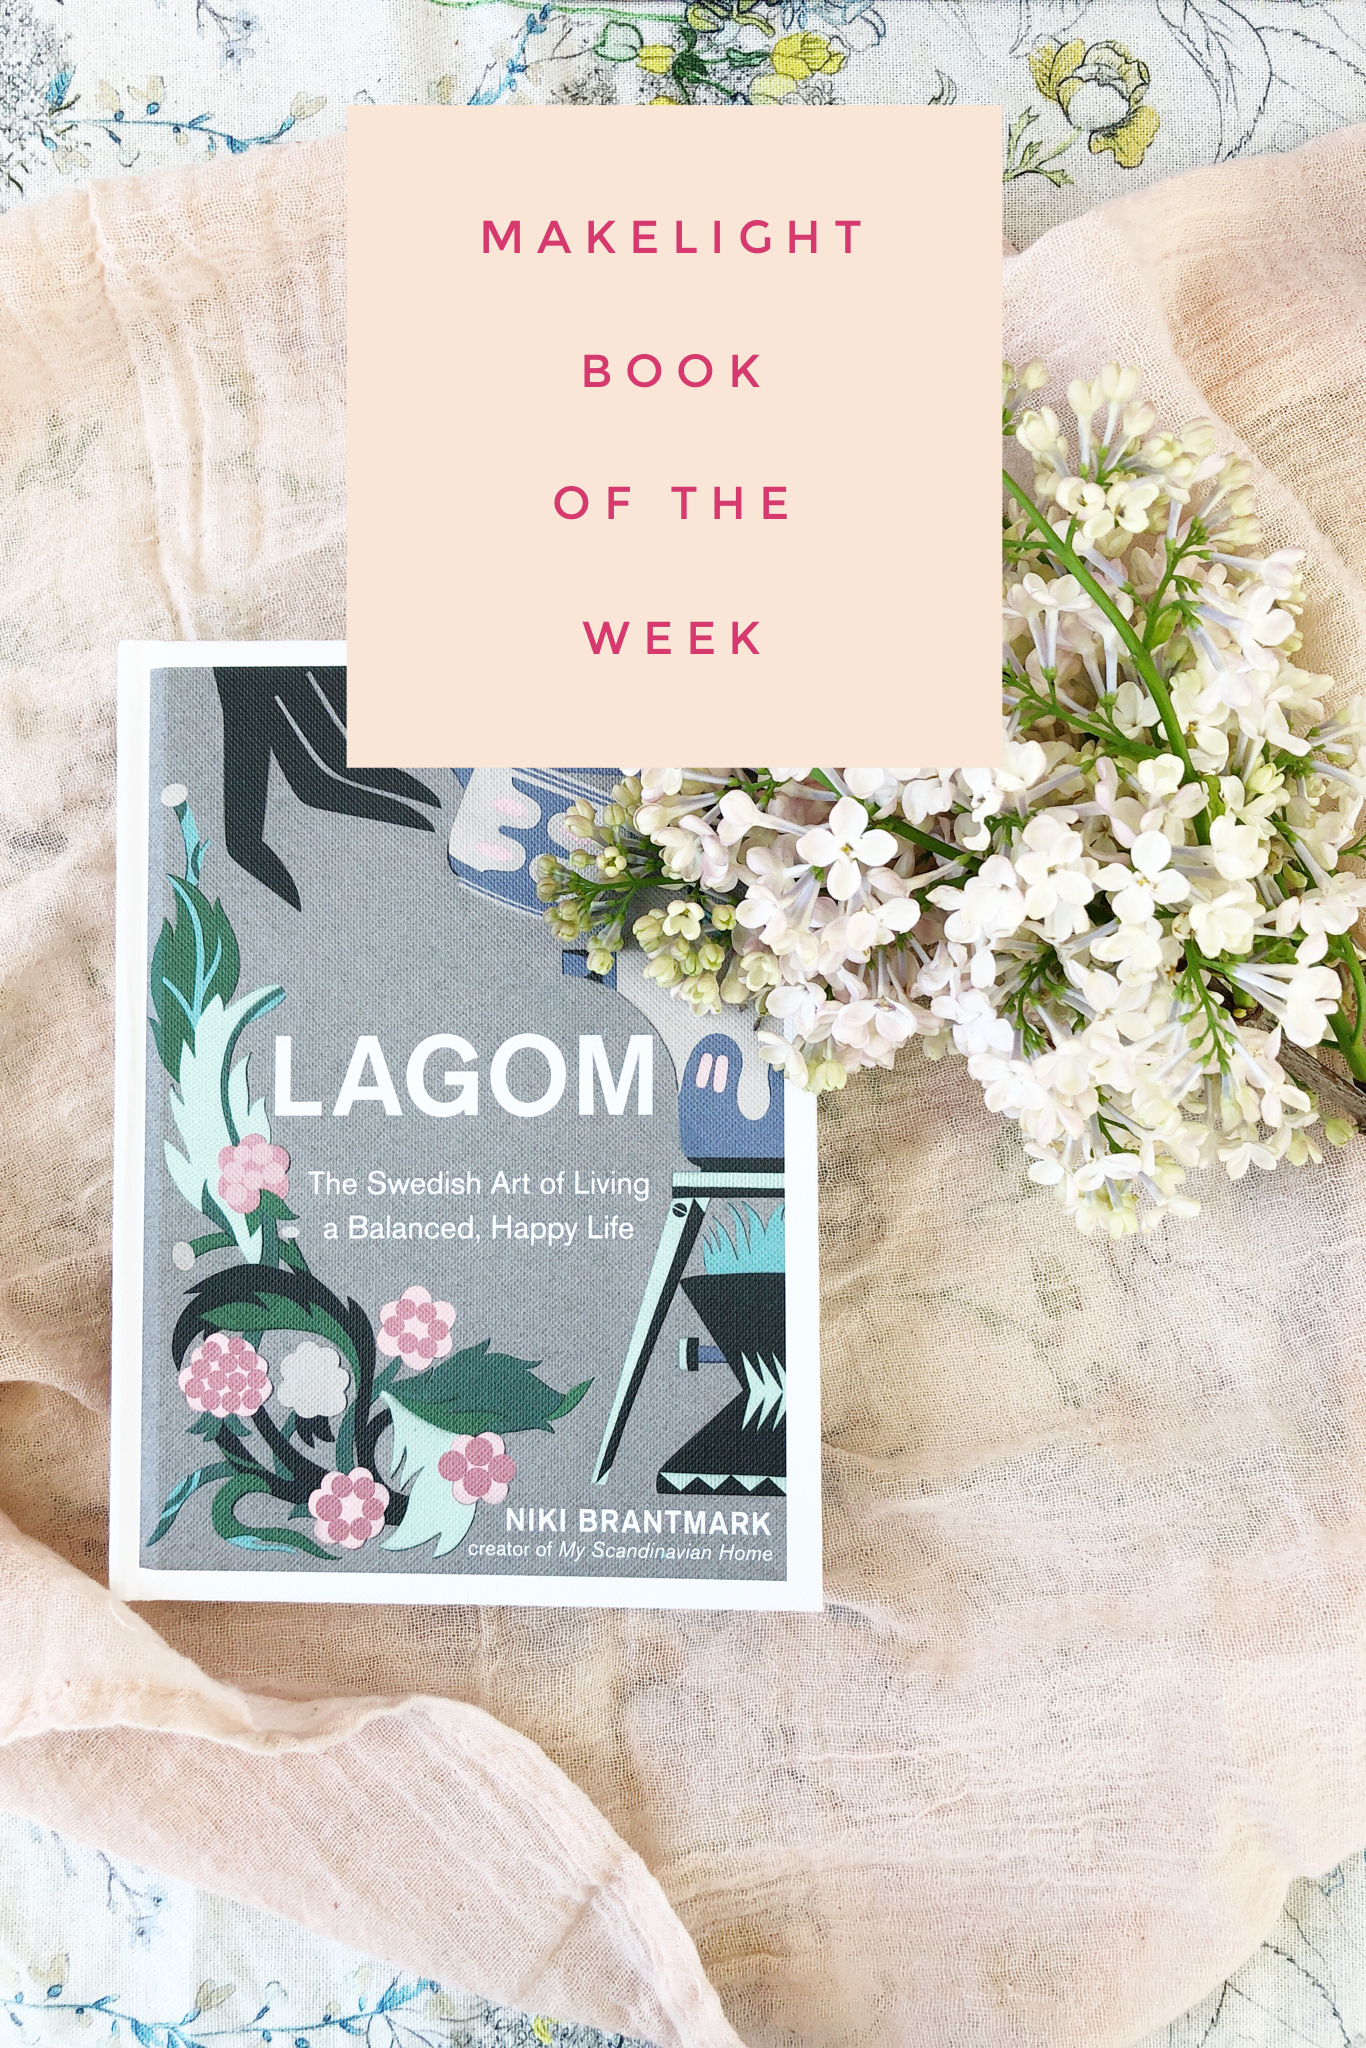 A gorgeous book about Lago, the Swedish Art of Living a Balanced, Happy Life